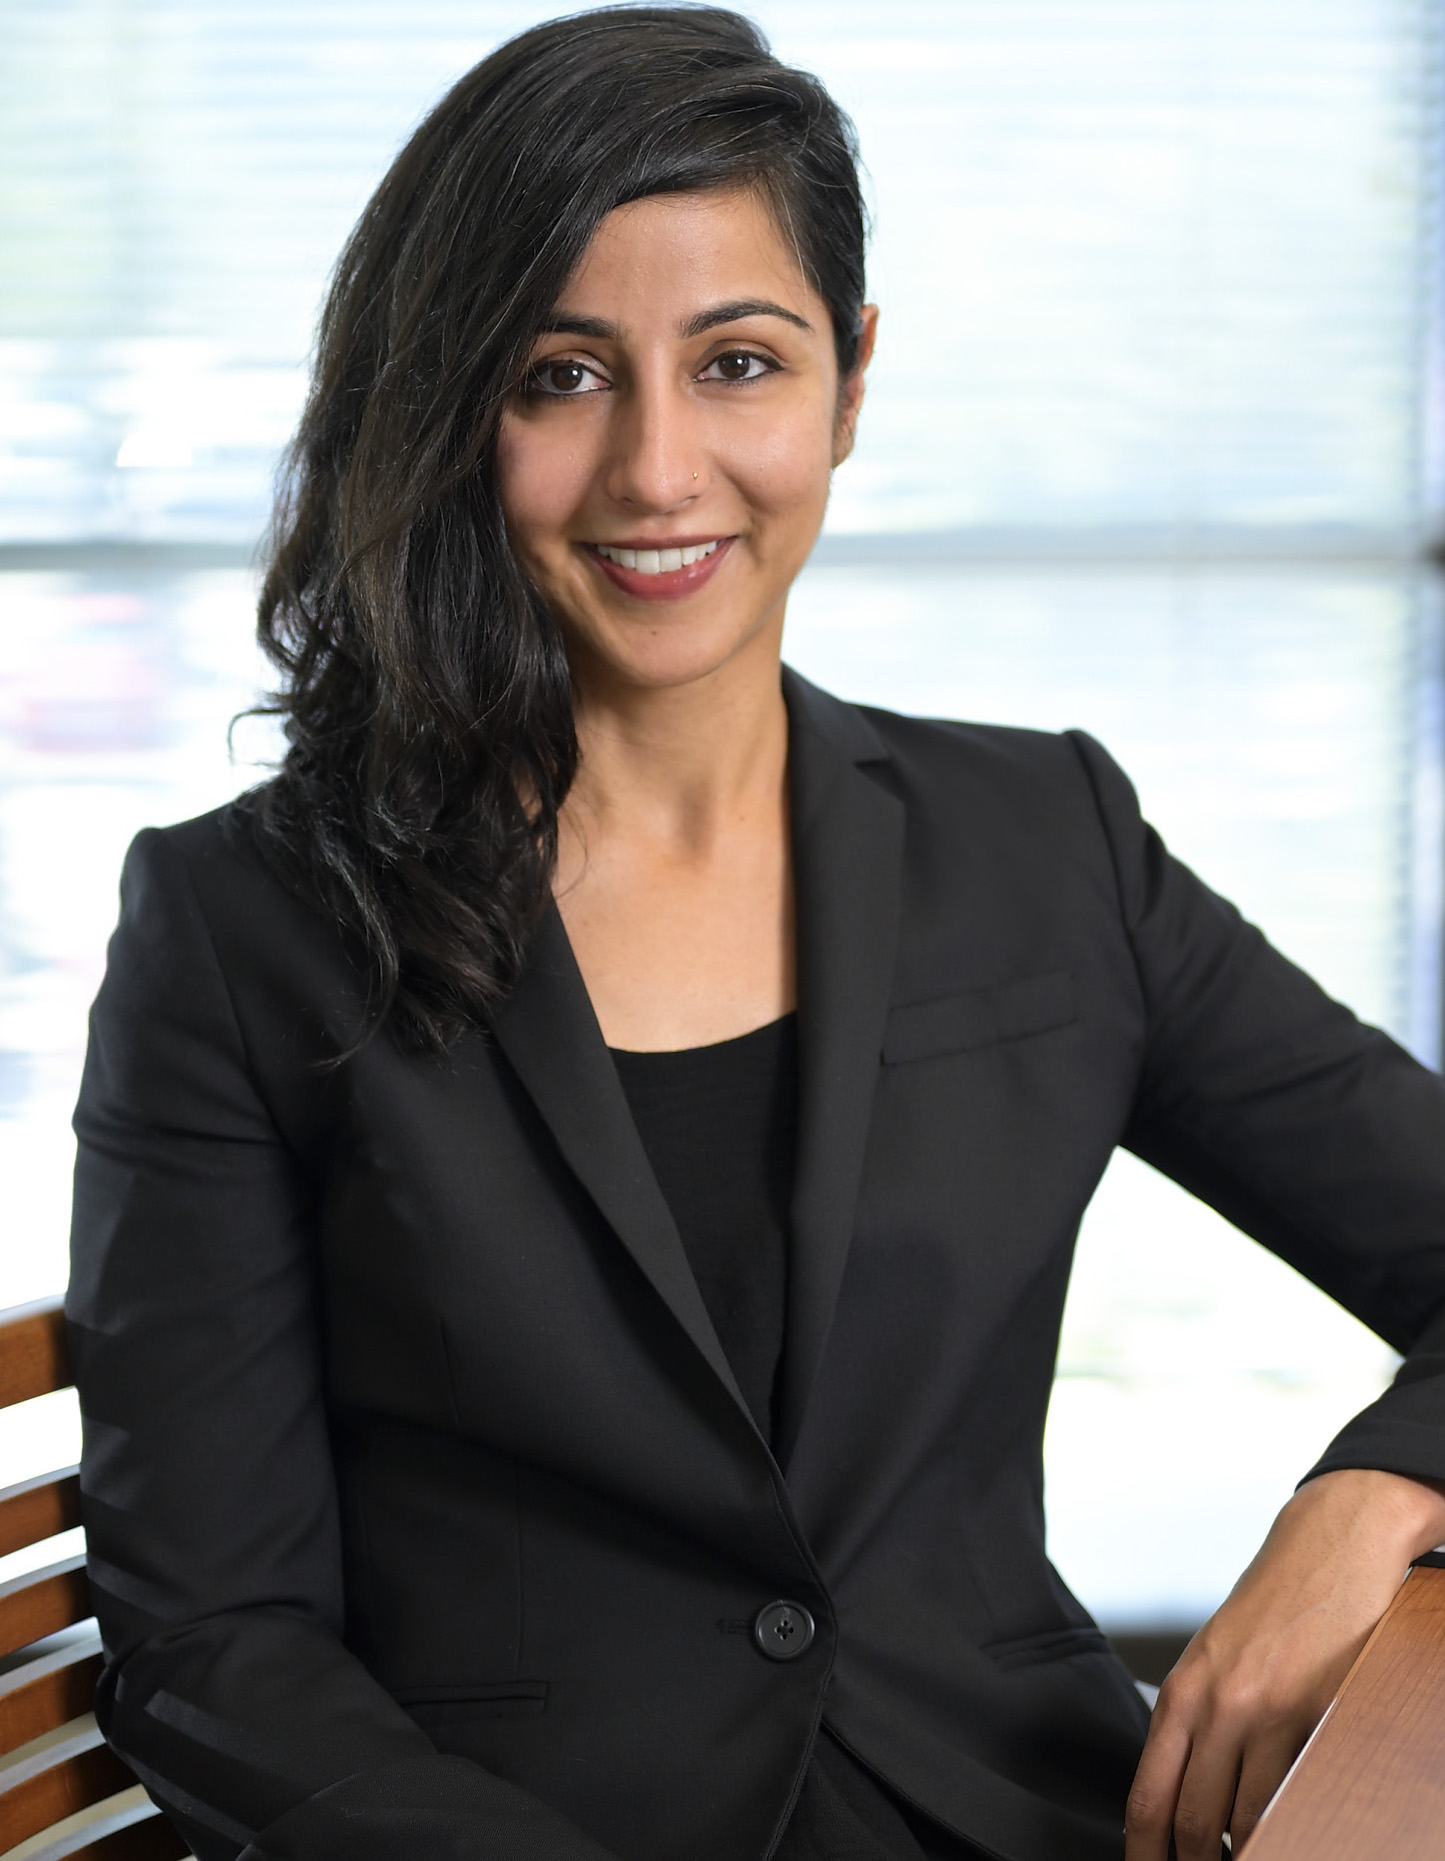 Director of the Clinic for Entrepreneurship and Assistant Professor of Law Komal Vaidya